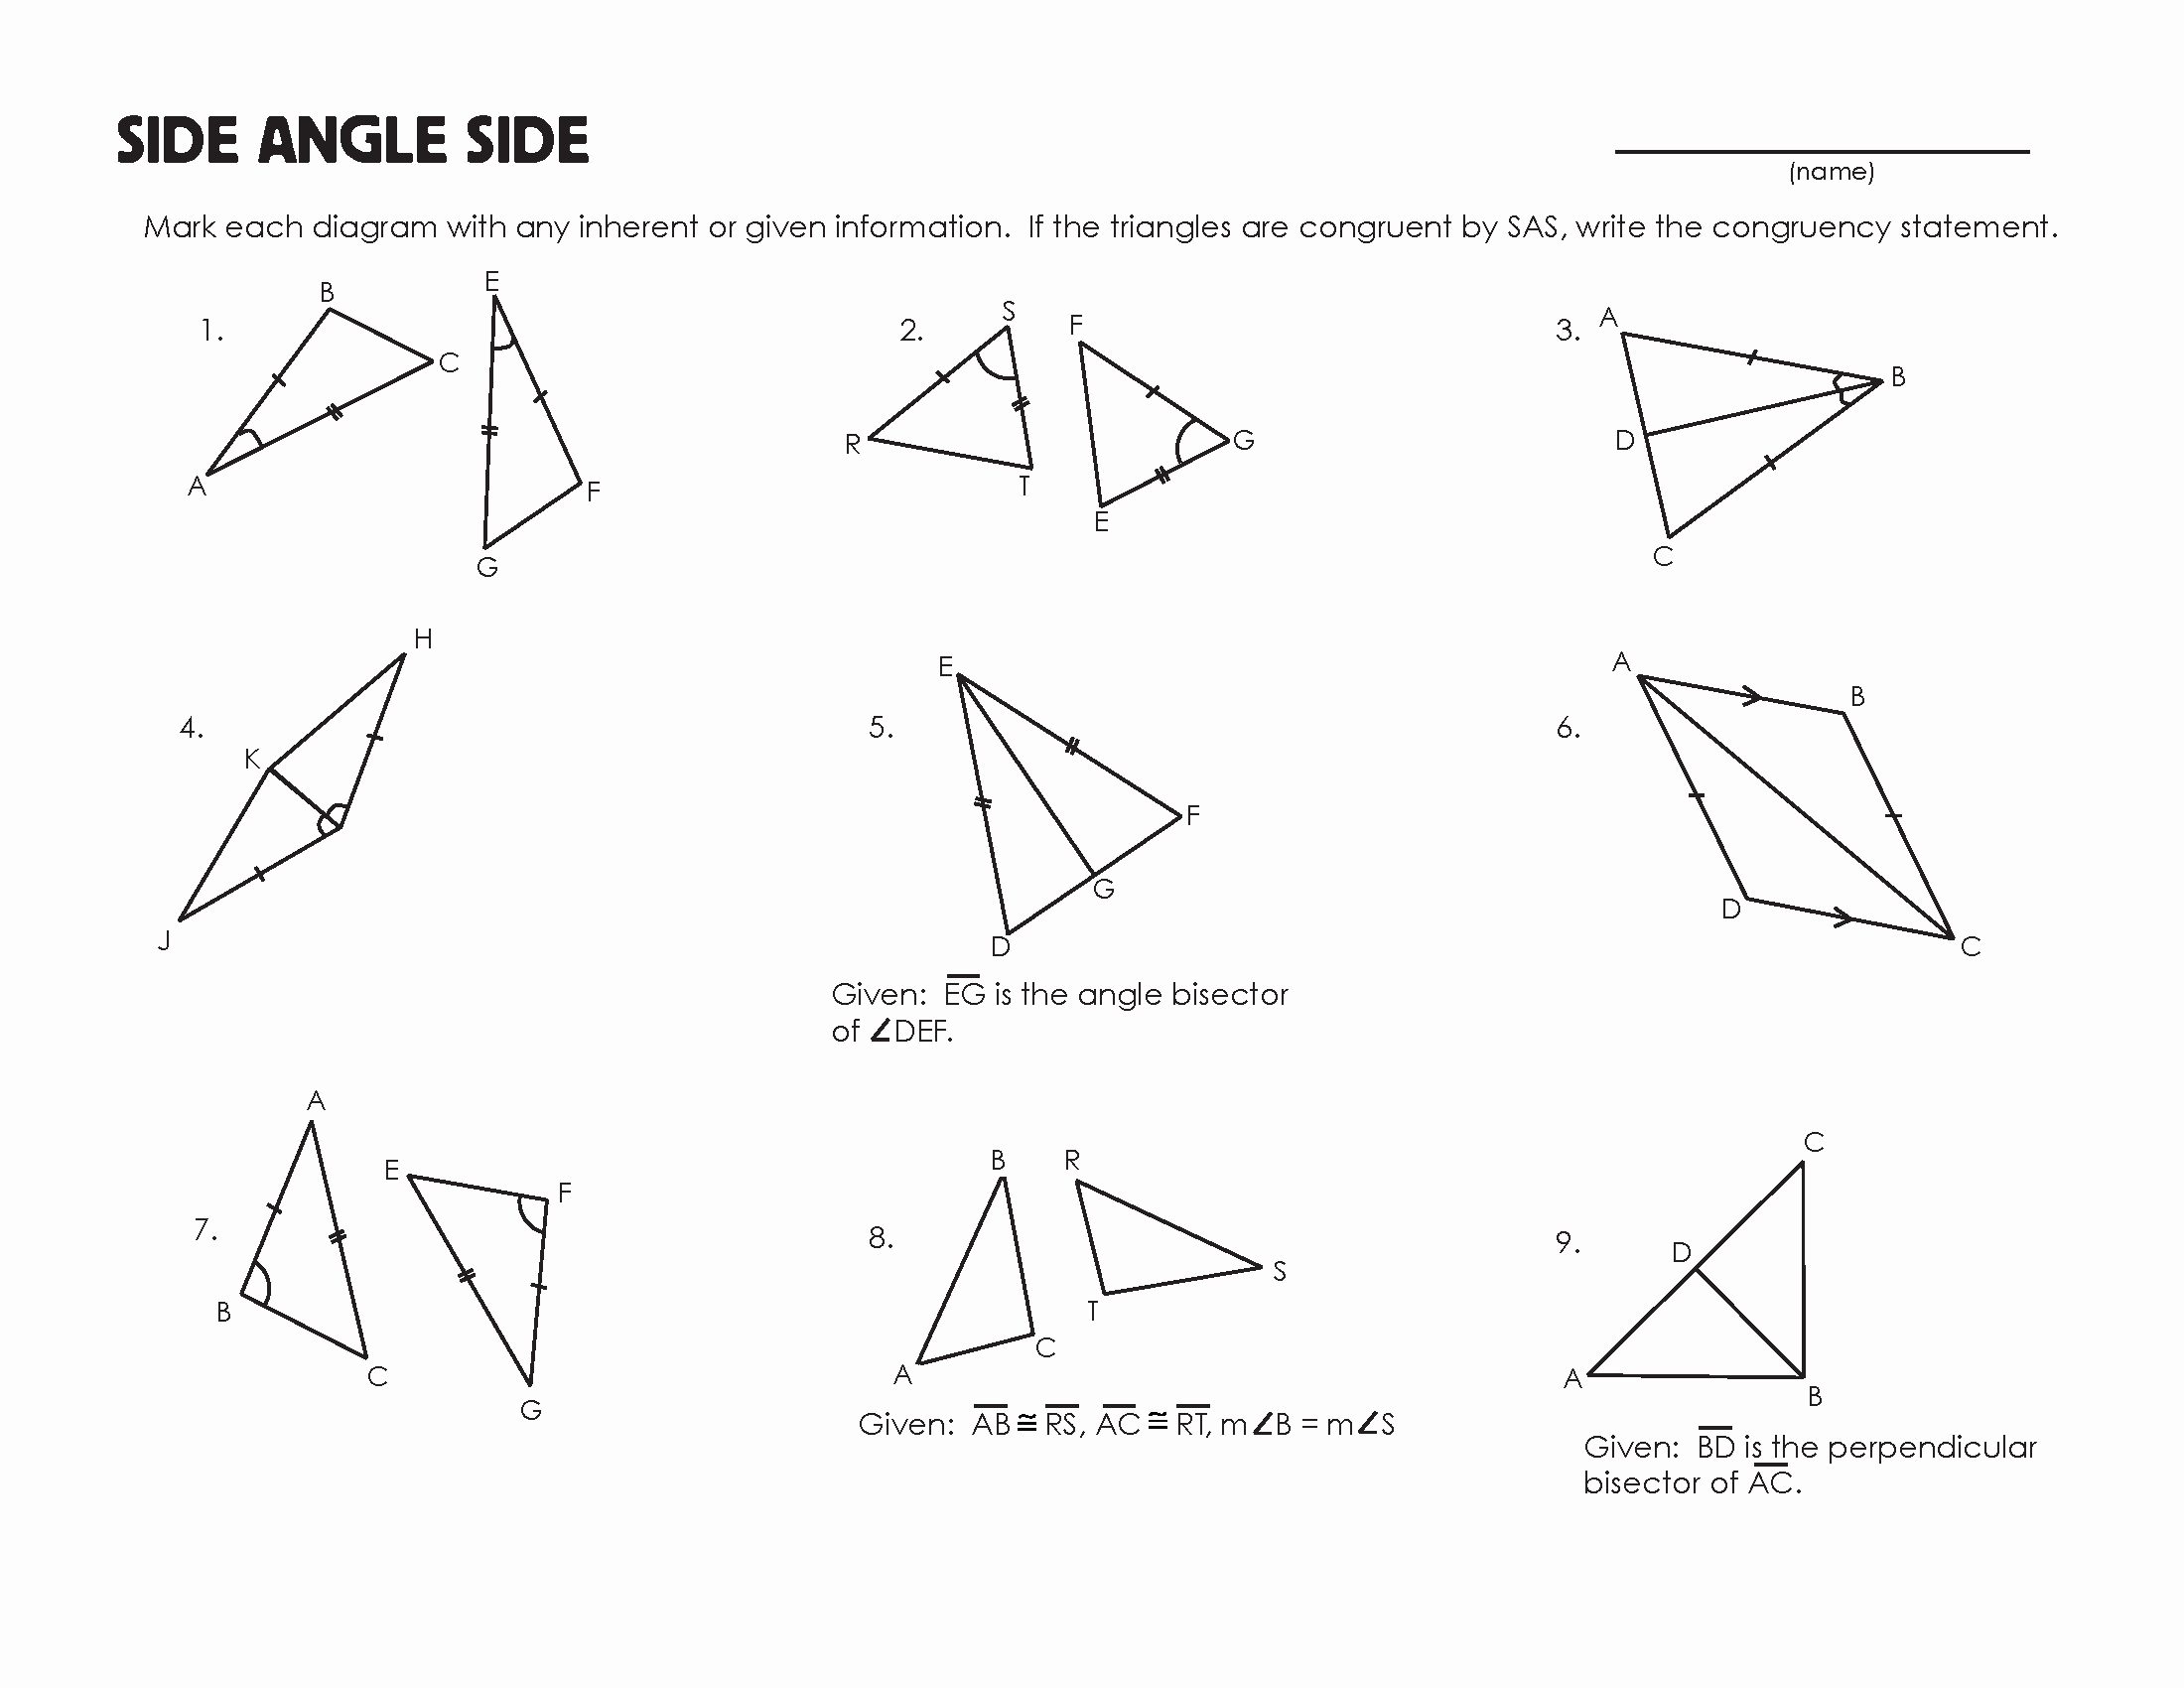 Geometry Worksheet Congruent Triangles Luxury Congruent Triangles Worksheet Flora